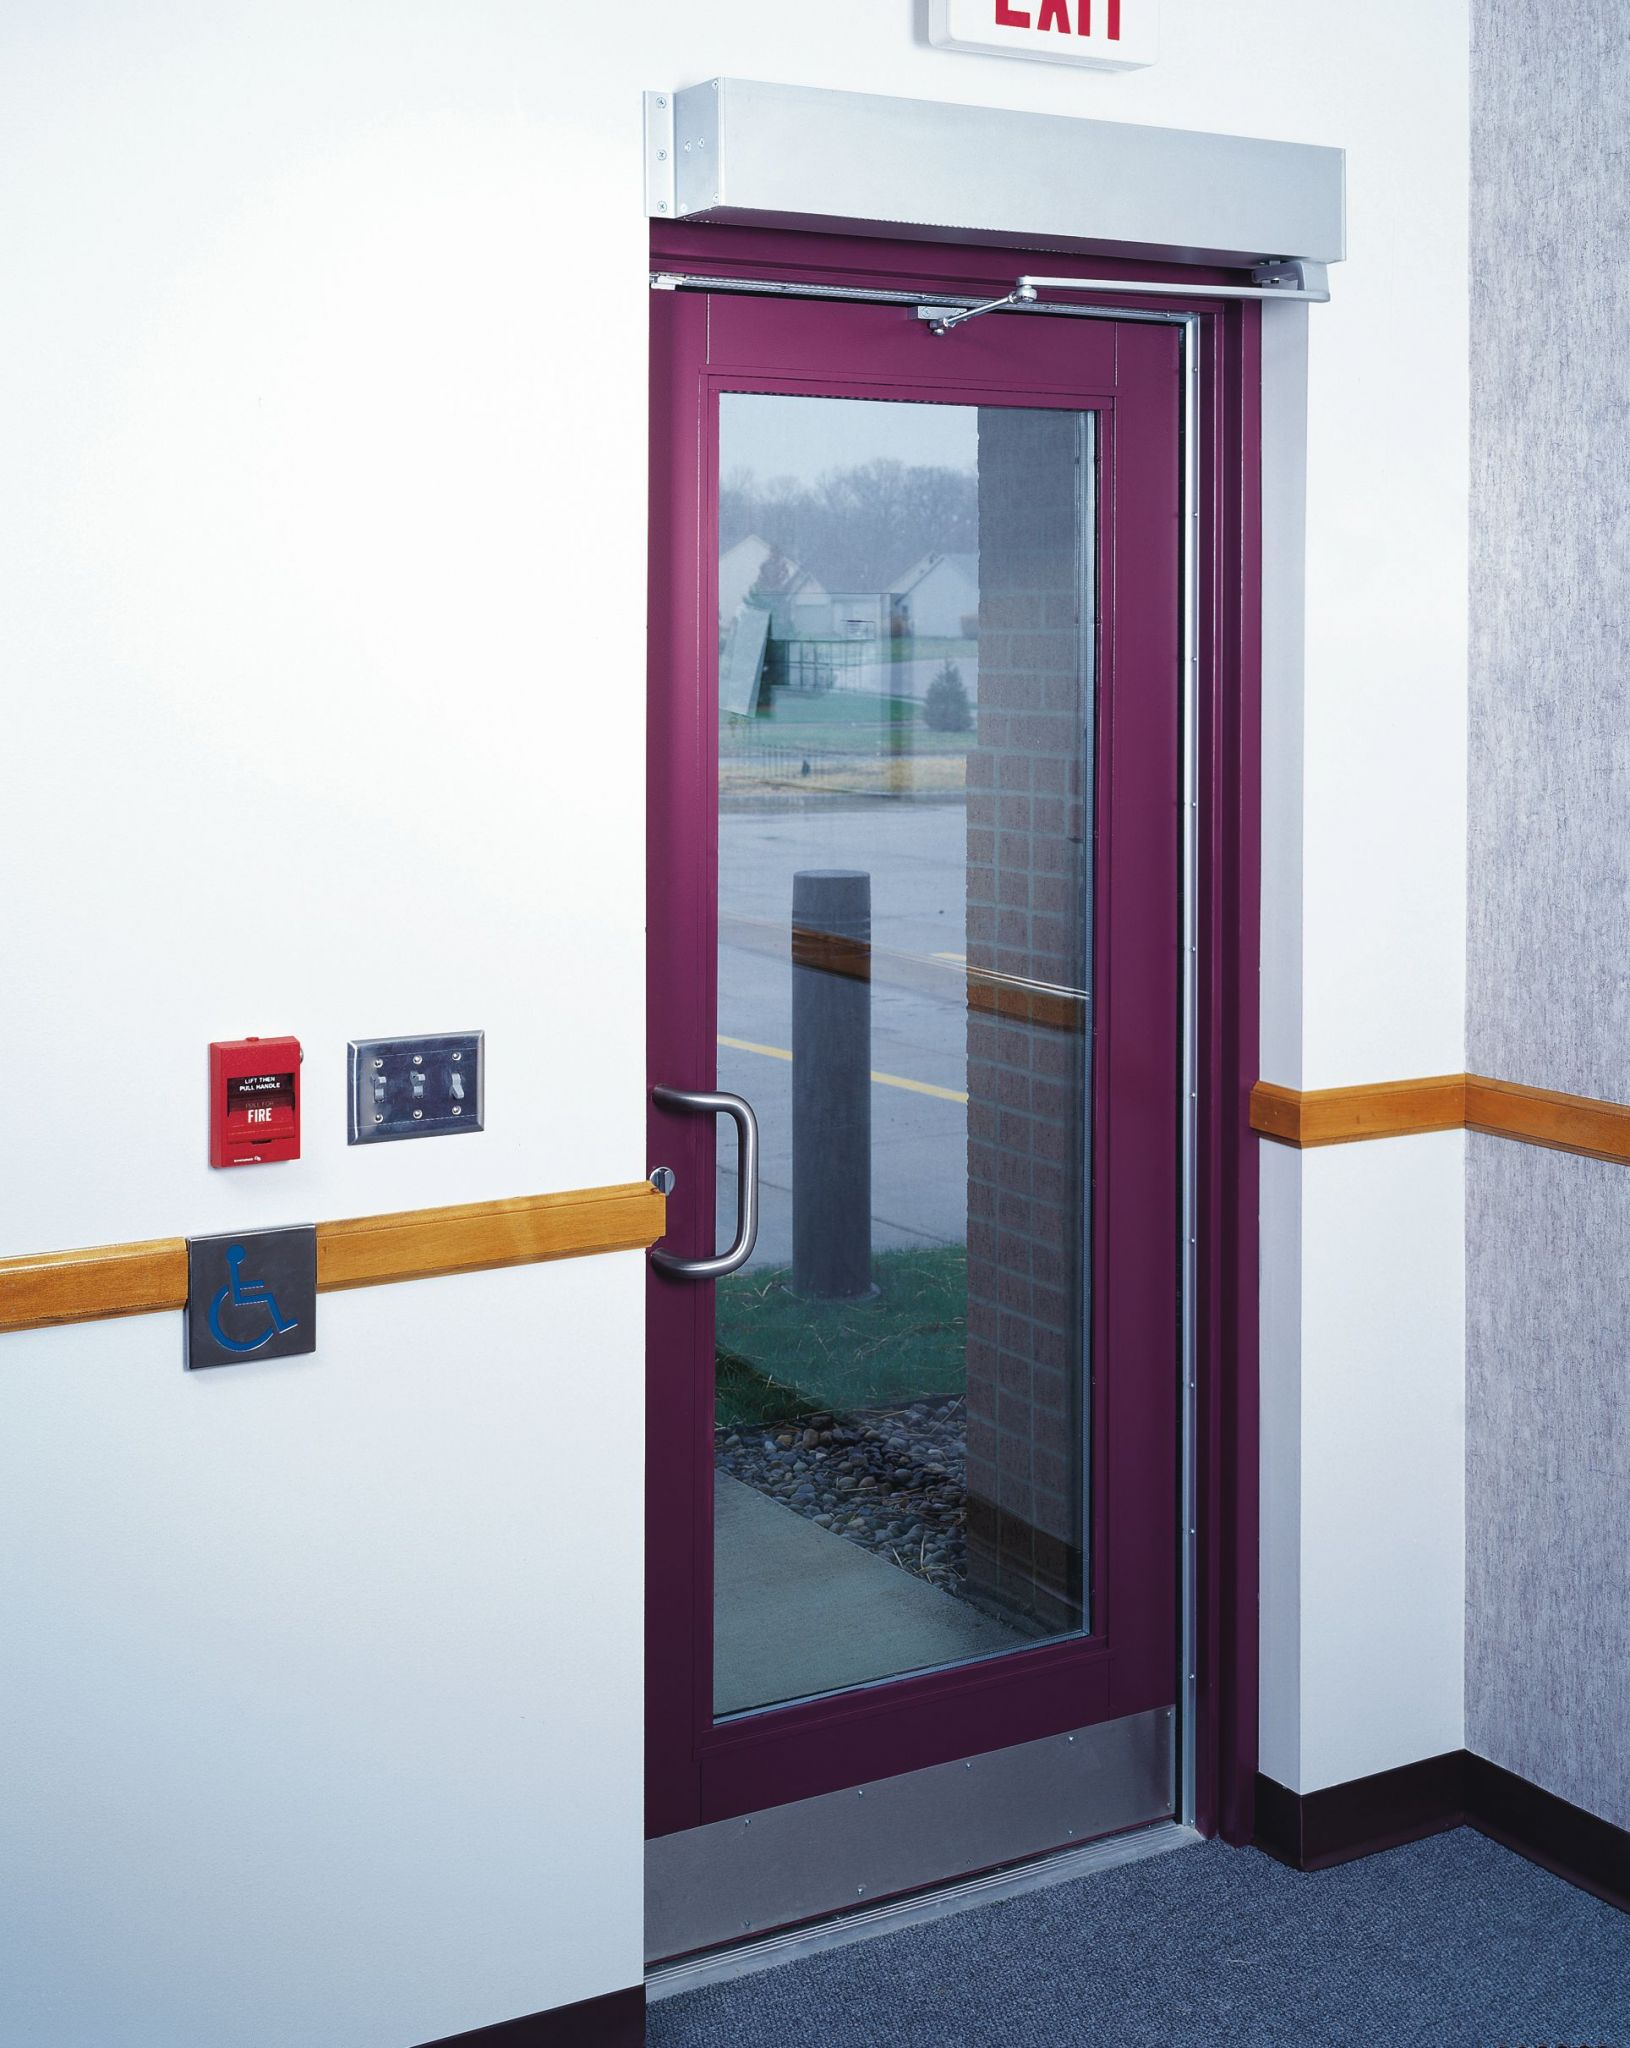 Bathroom Sign Mounting Height understanding new accessibility requirements for doors